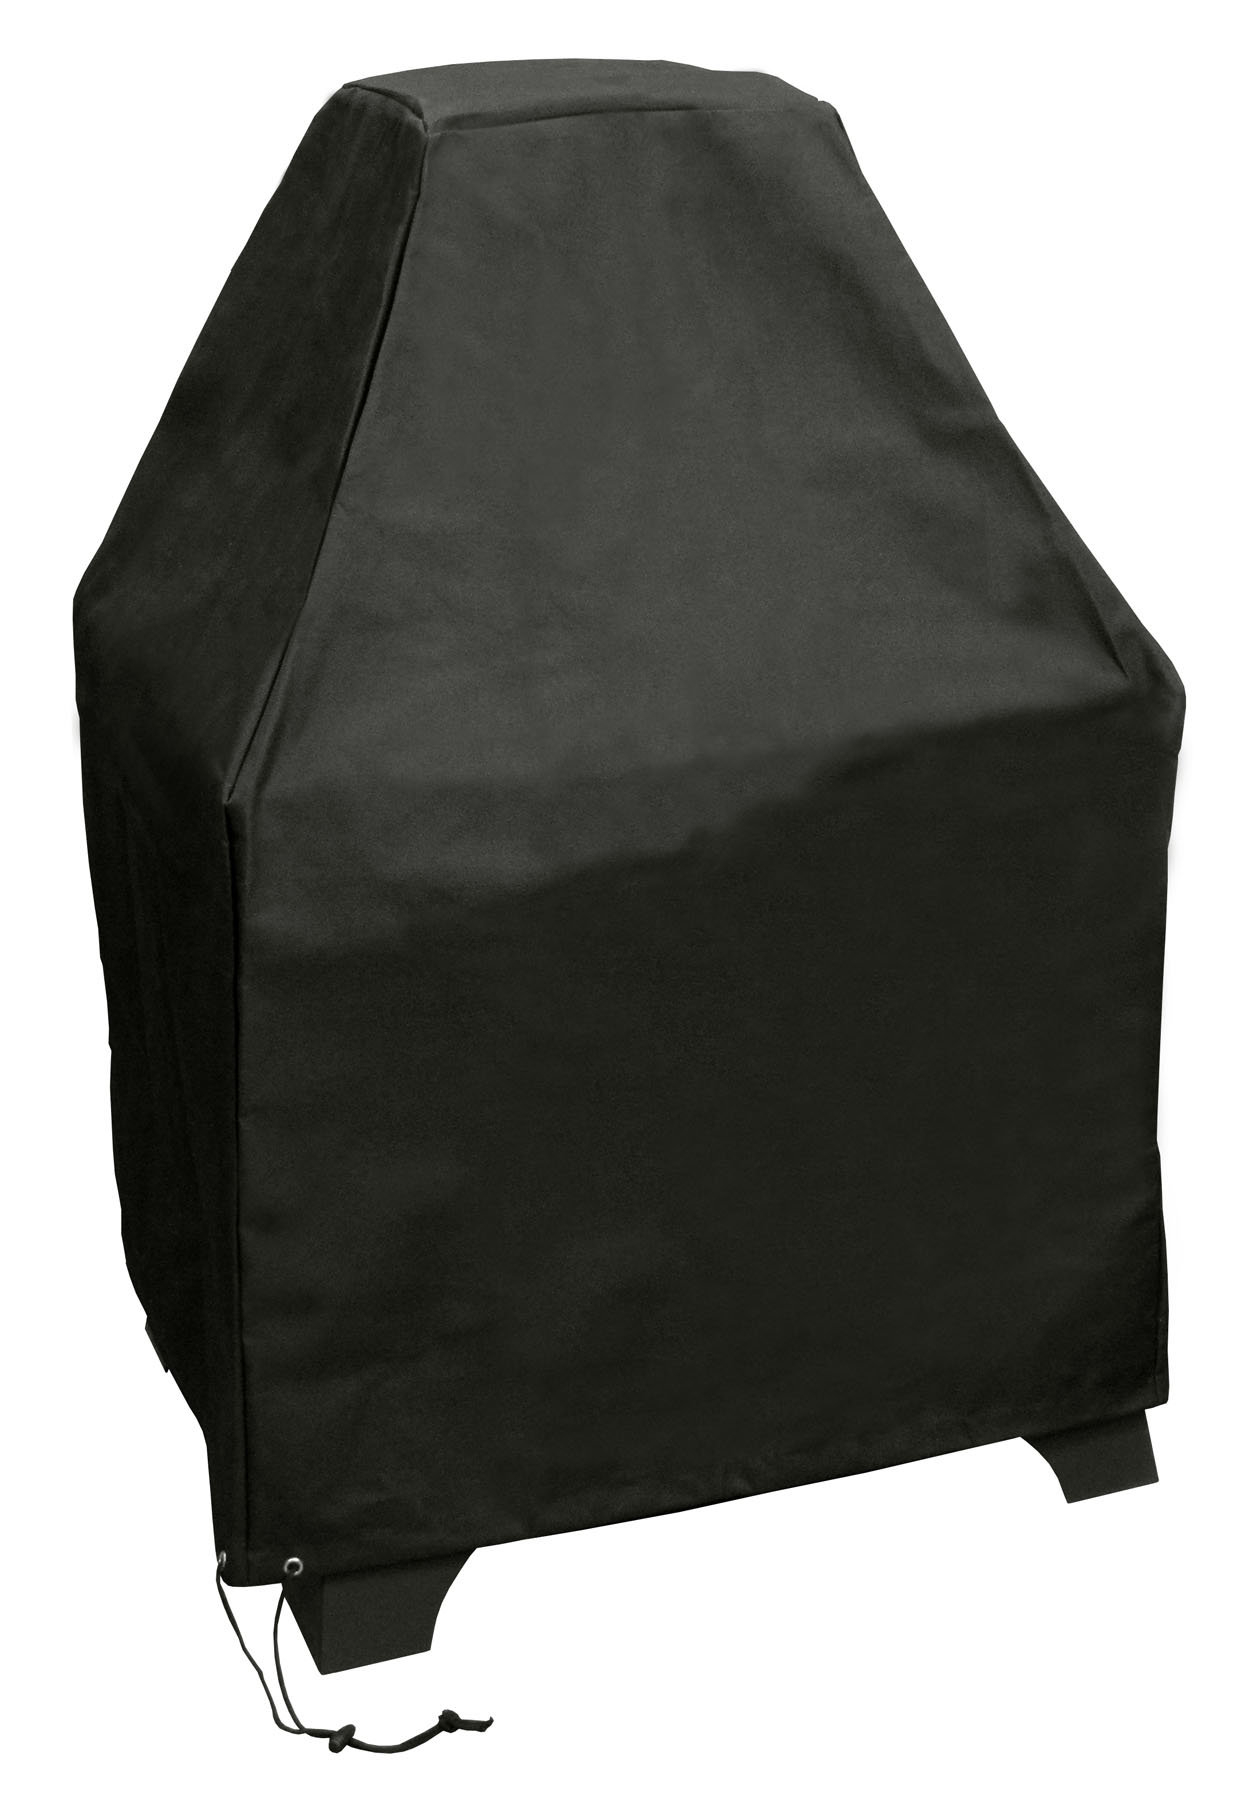 Landmann Redford Fire Pit Cover Reviews Wayfair intended for size 1257 X 1800